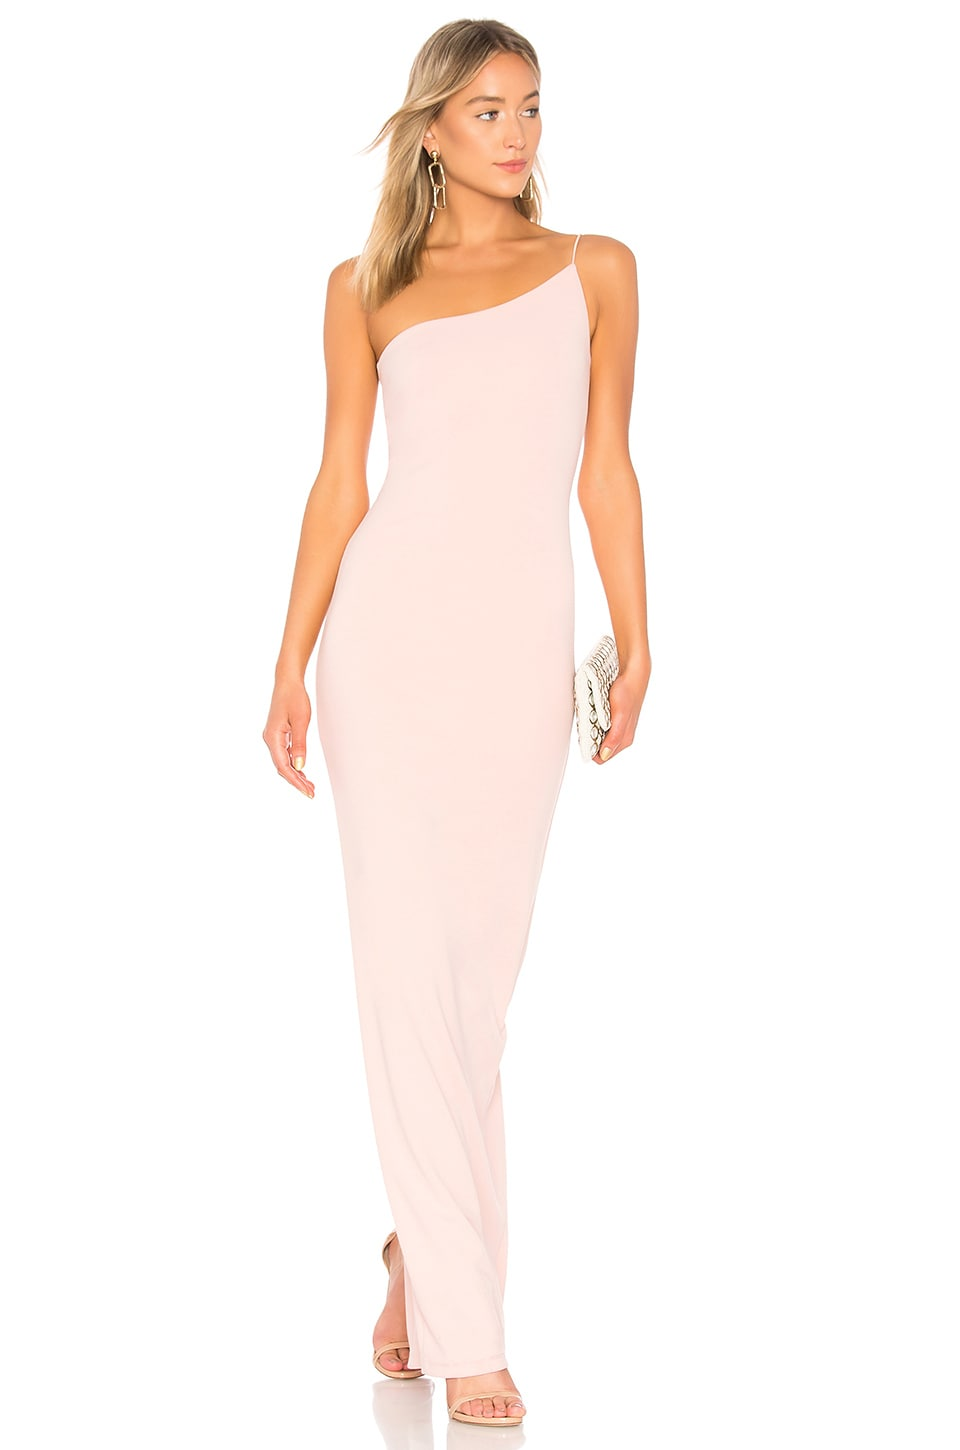 Nookie Penelope Gown in Blush